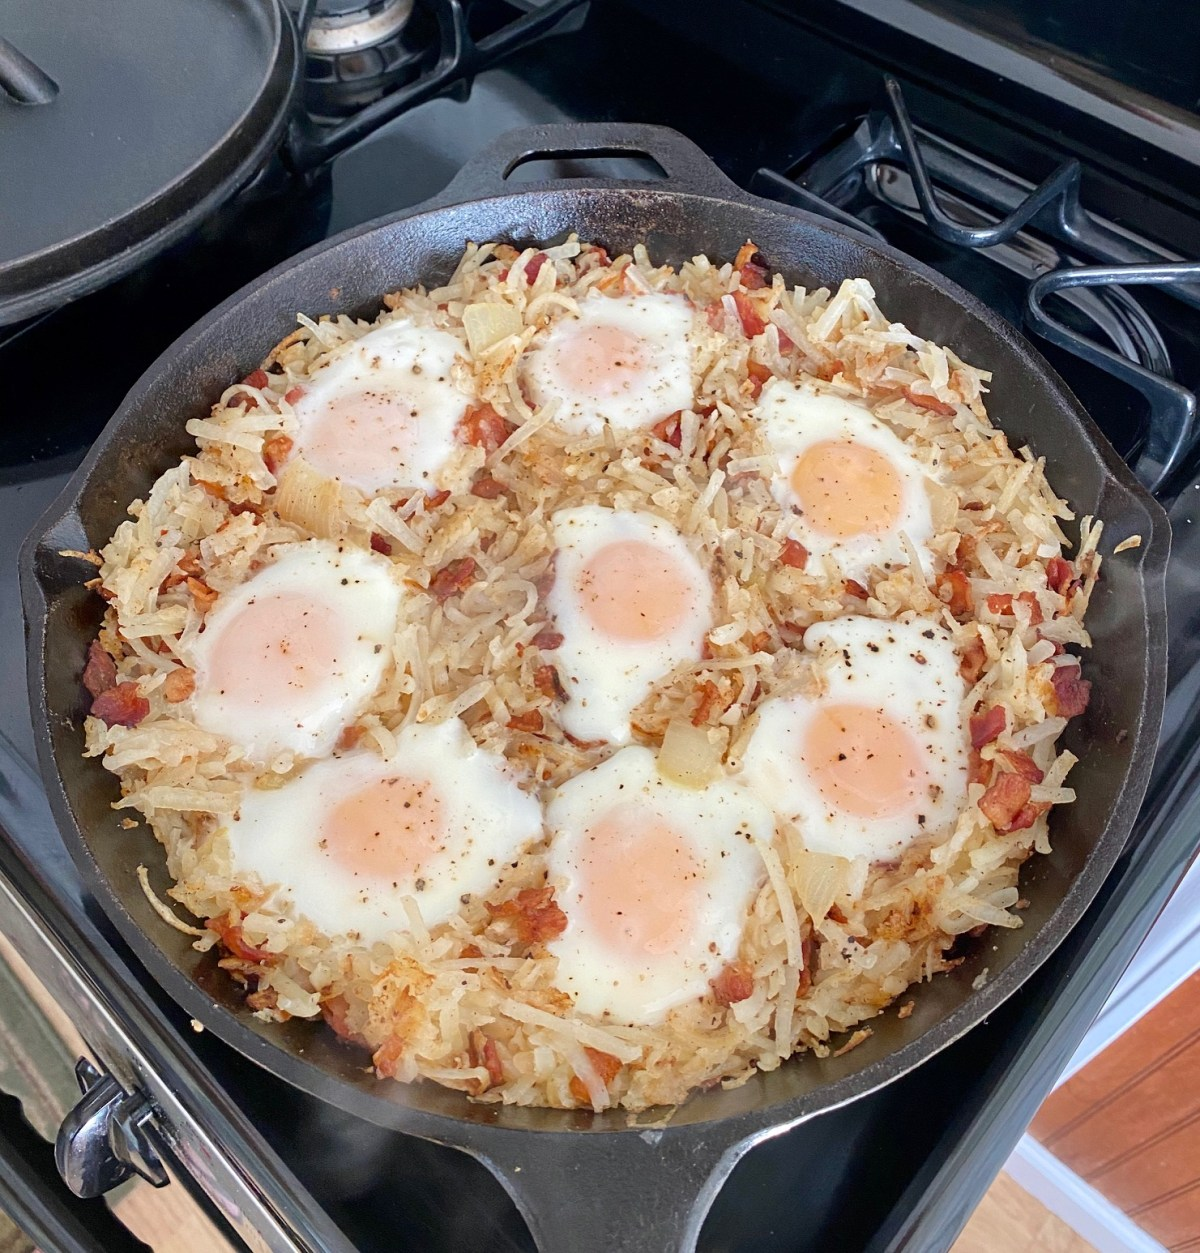 Eggs and hash browns cooking in a cast iron skillet on a stovetop. #castiron #breakfastideas #heartybreakfast #skilletbreakfast #brunchrecipes #hashbrownrecipes